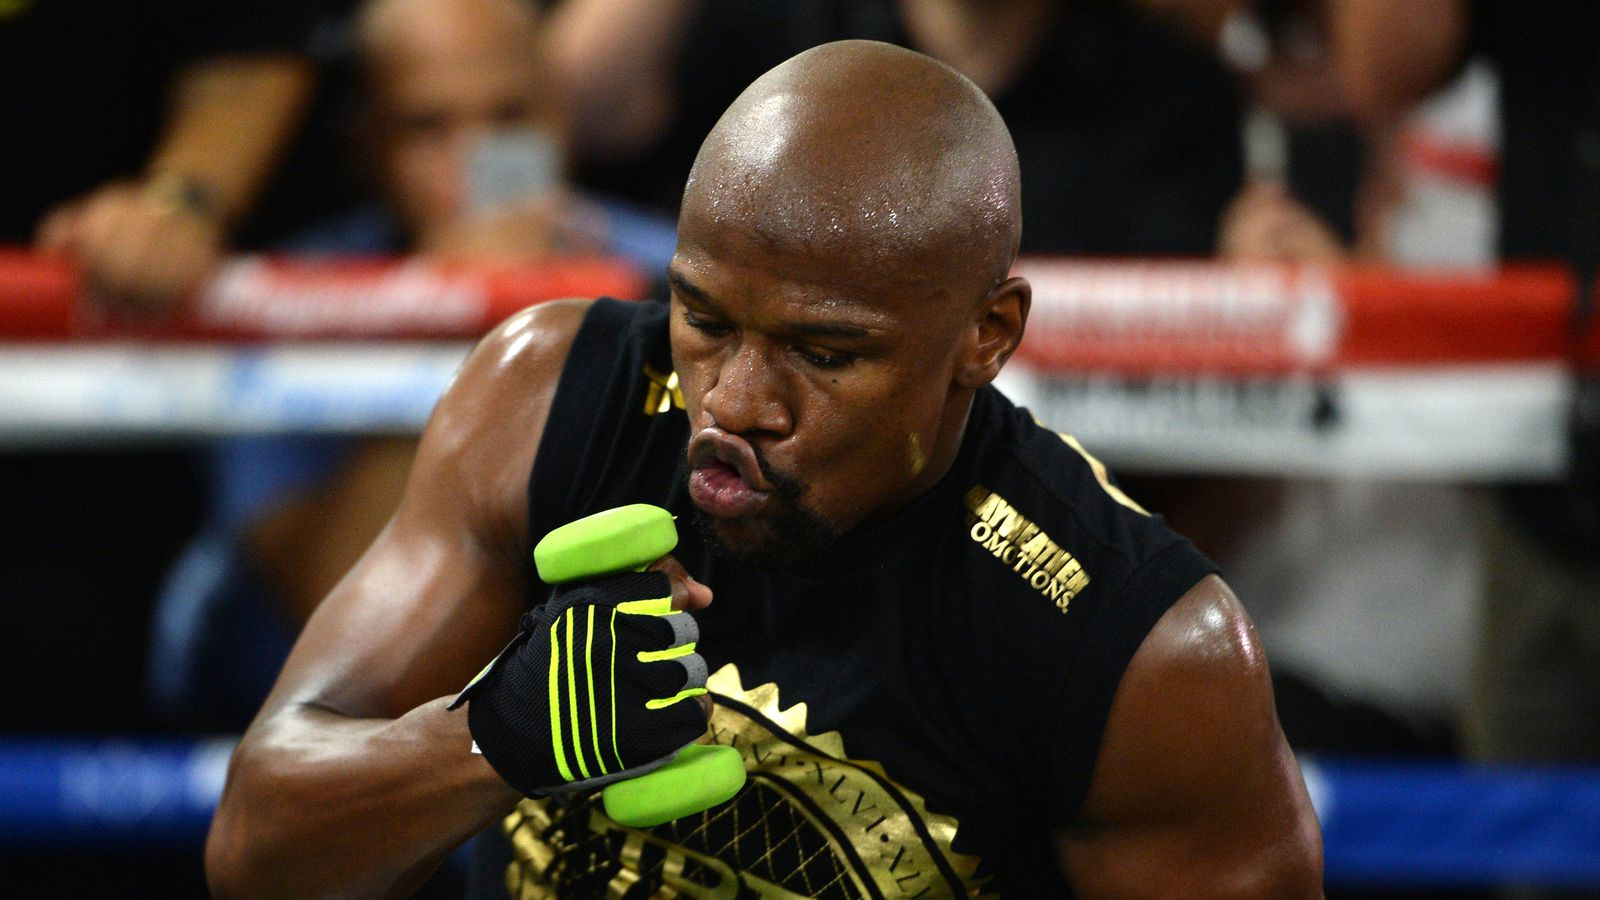 Mayweather Vs Mcgregor Live Stream How To Watch The